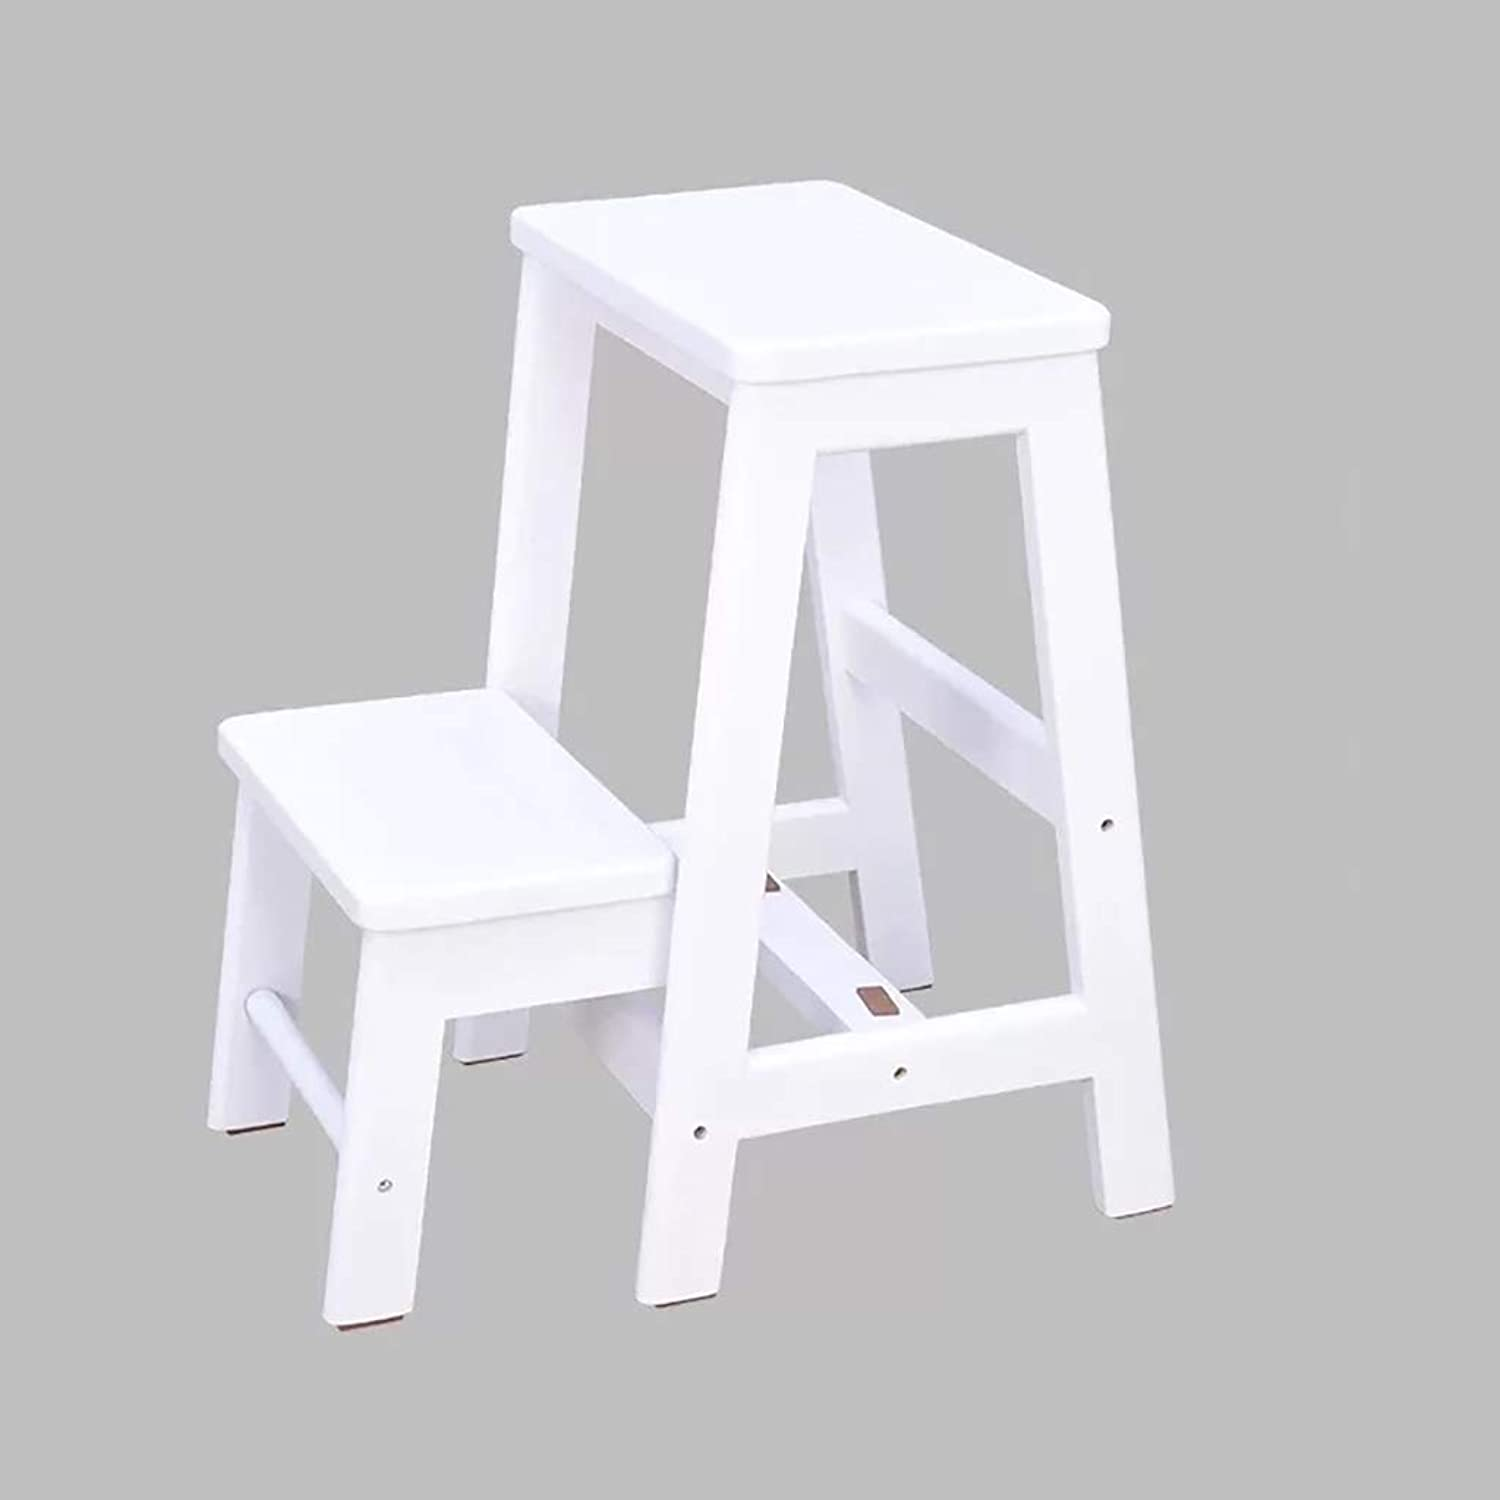 LYJBT Solid wood step ladder Folding 2 steps Wooden ladder portable chair home stair chair ladder widening stool for climbing